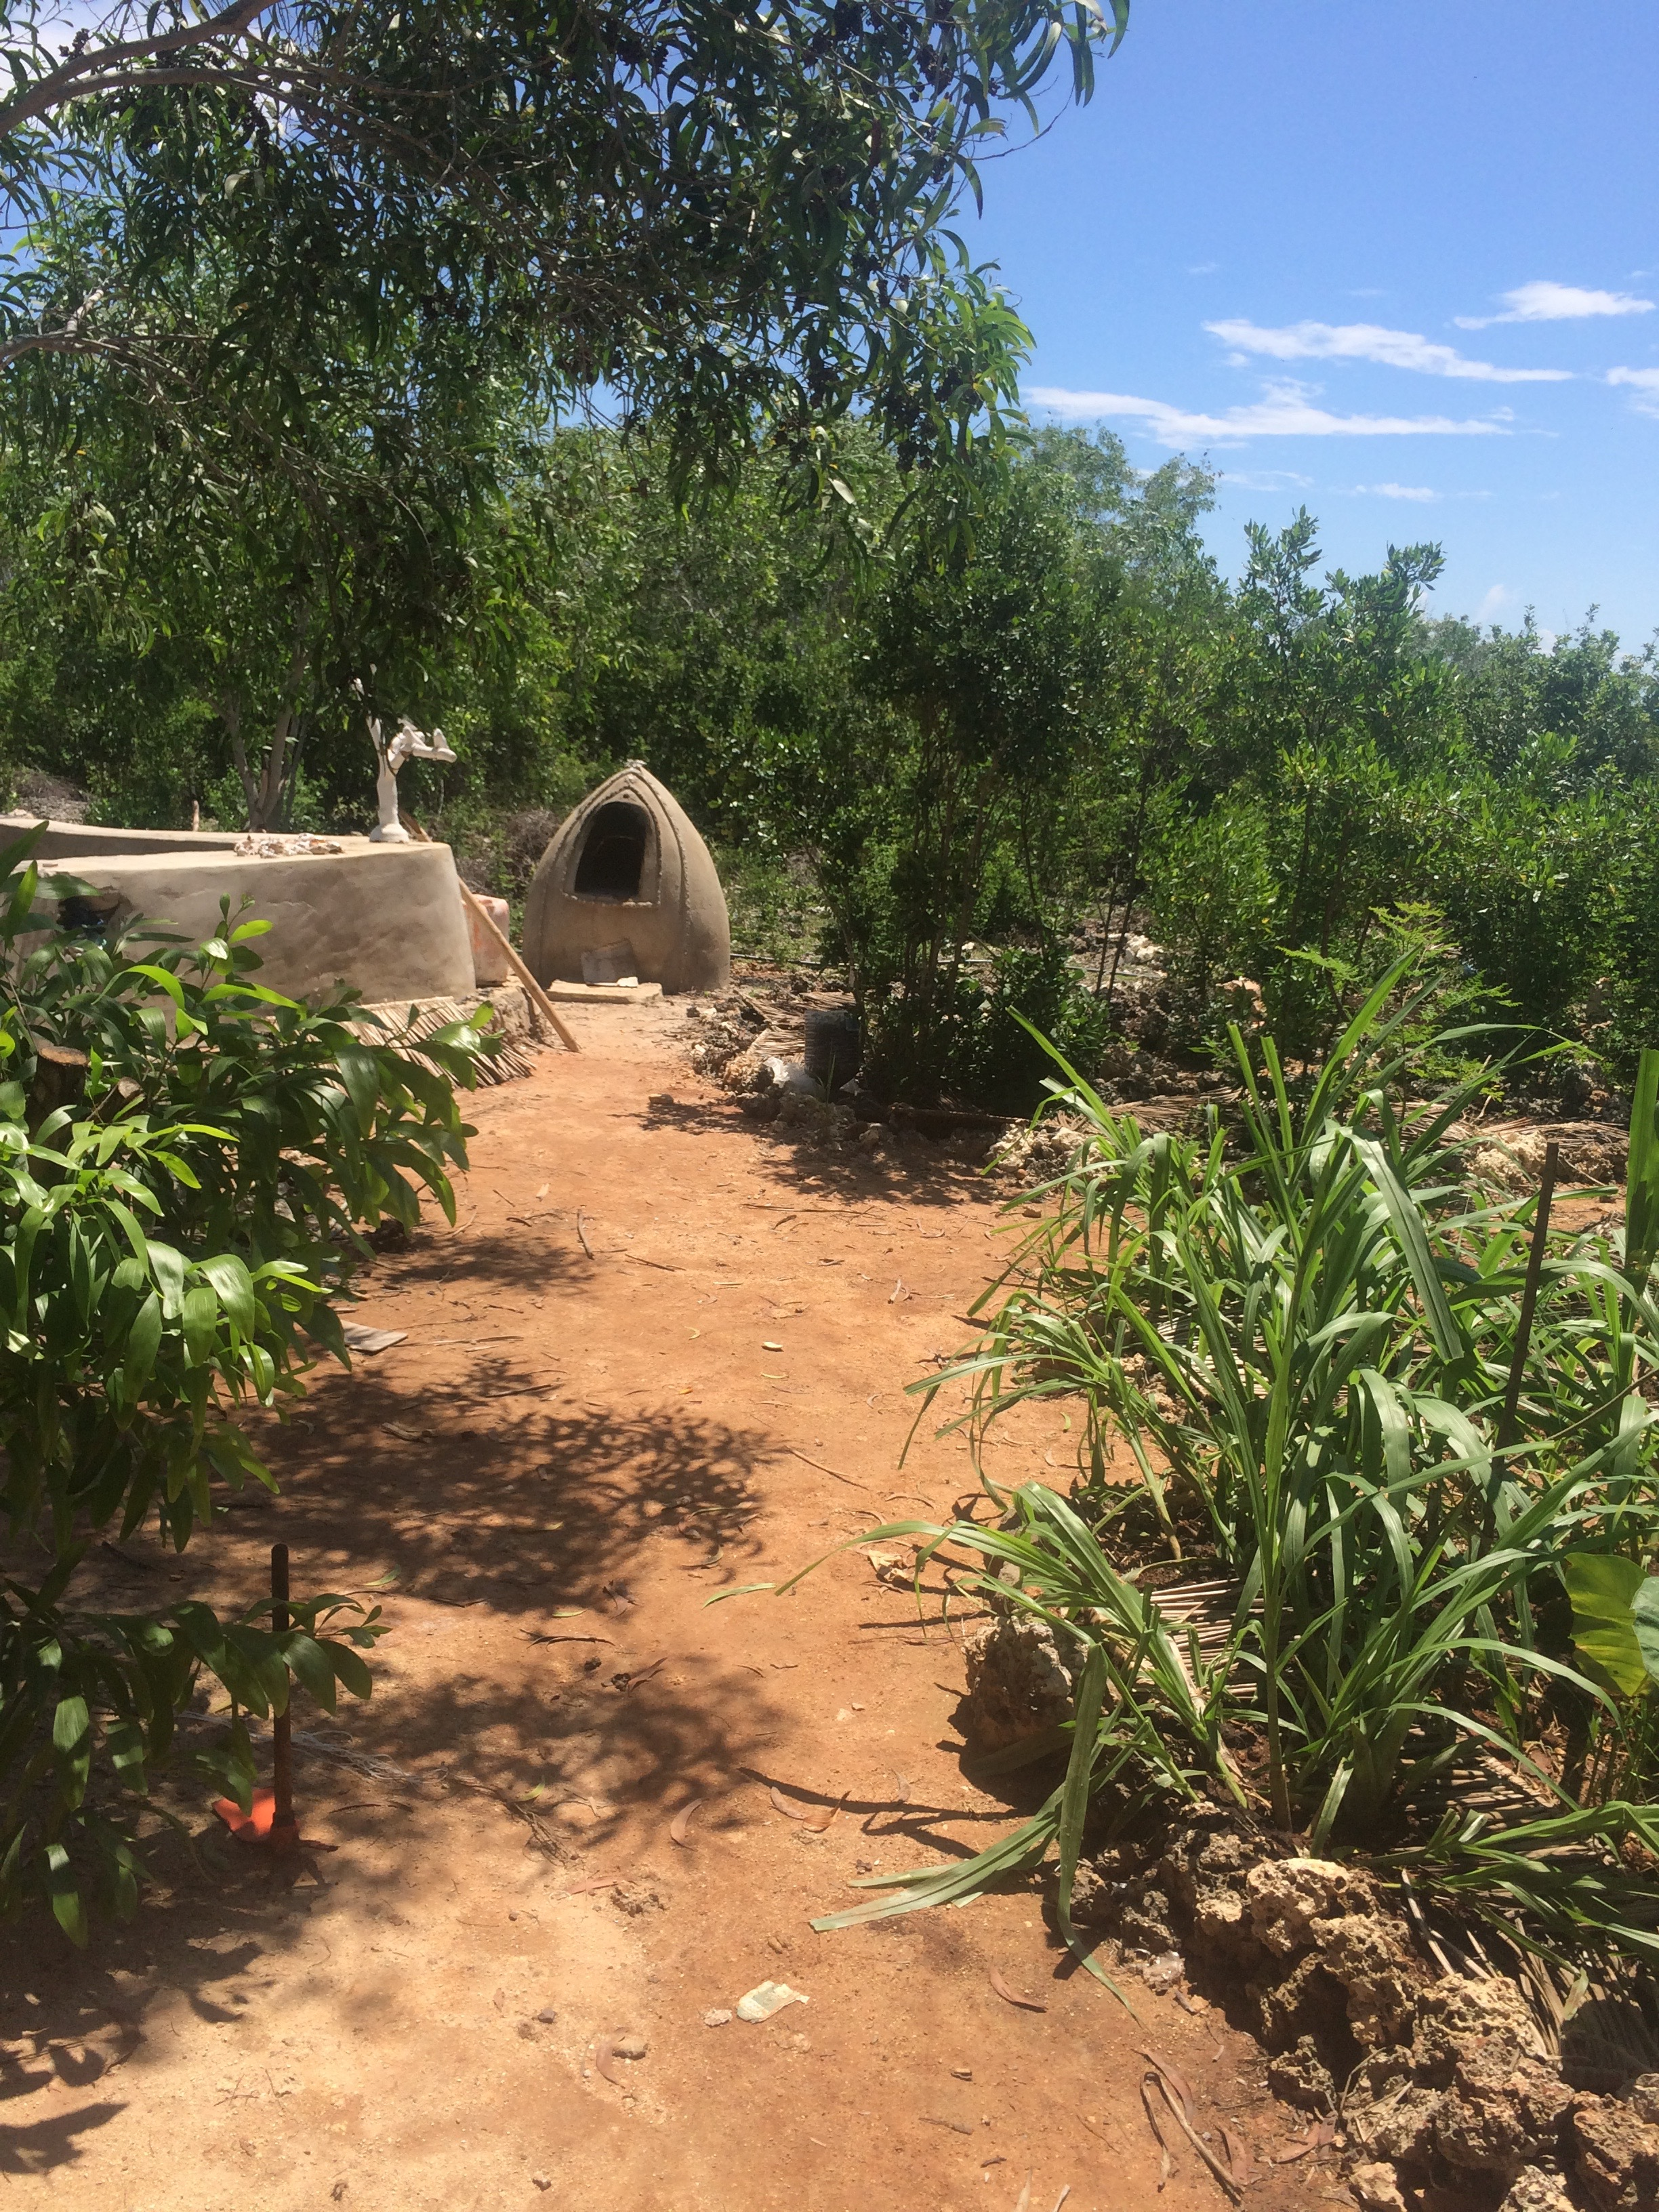 The garden and oven made of clay